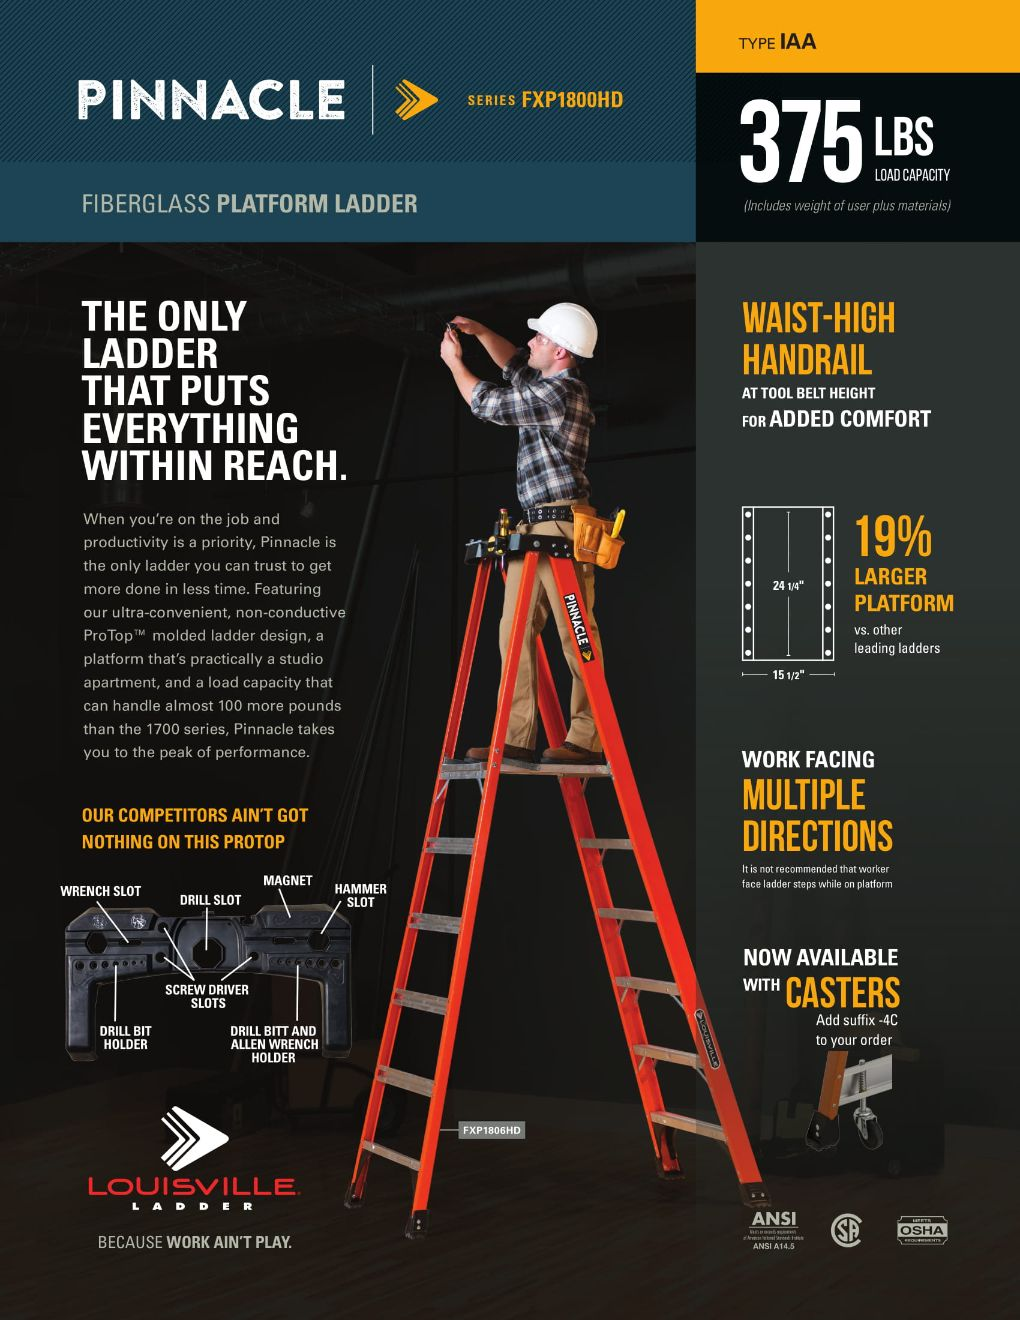 FXP1800HD Pinnacle Ladder Flyer and Spec Sheet Marketing Material Image